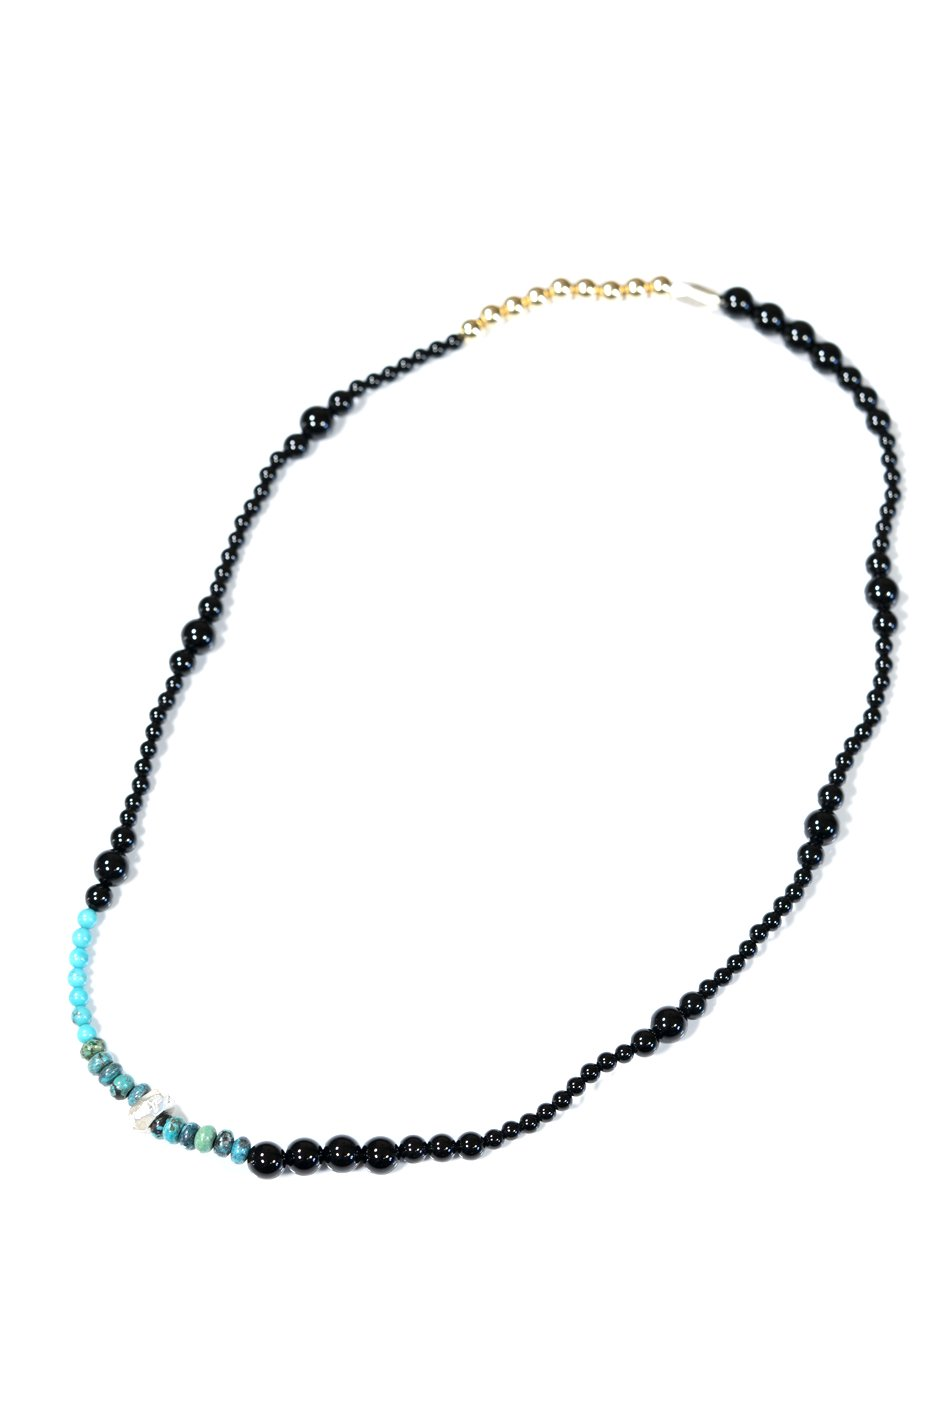 In Stock!!! Cut Beads Stretch Necklace /14KGFLD